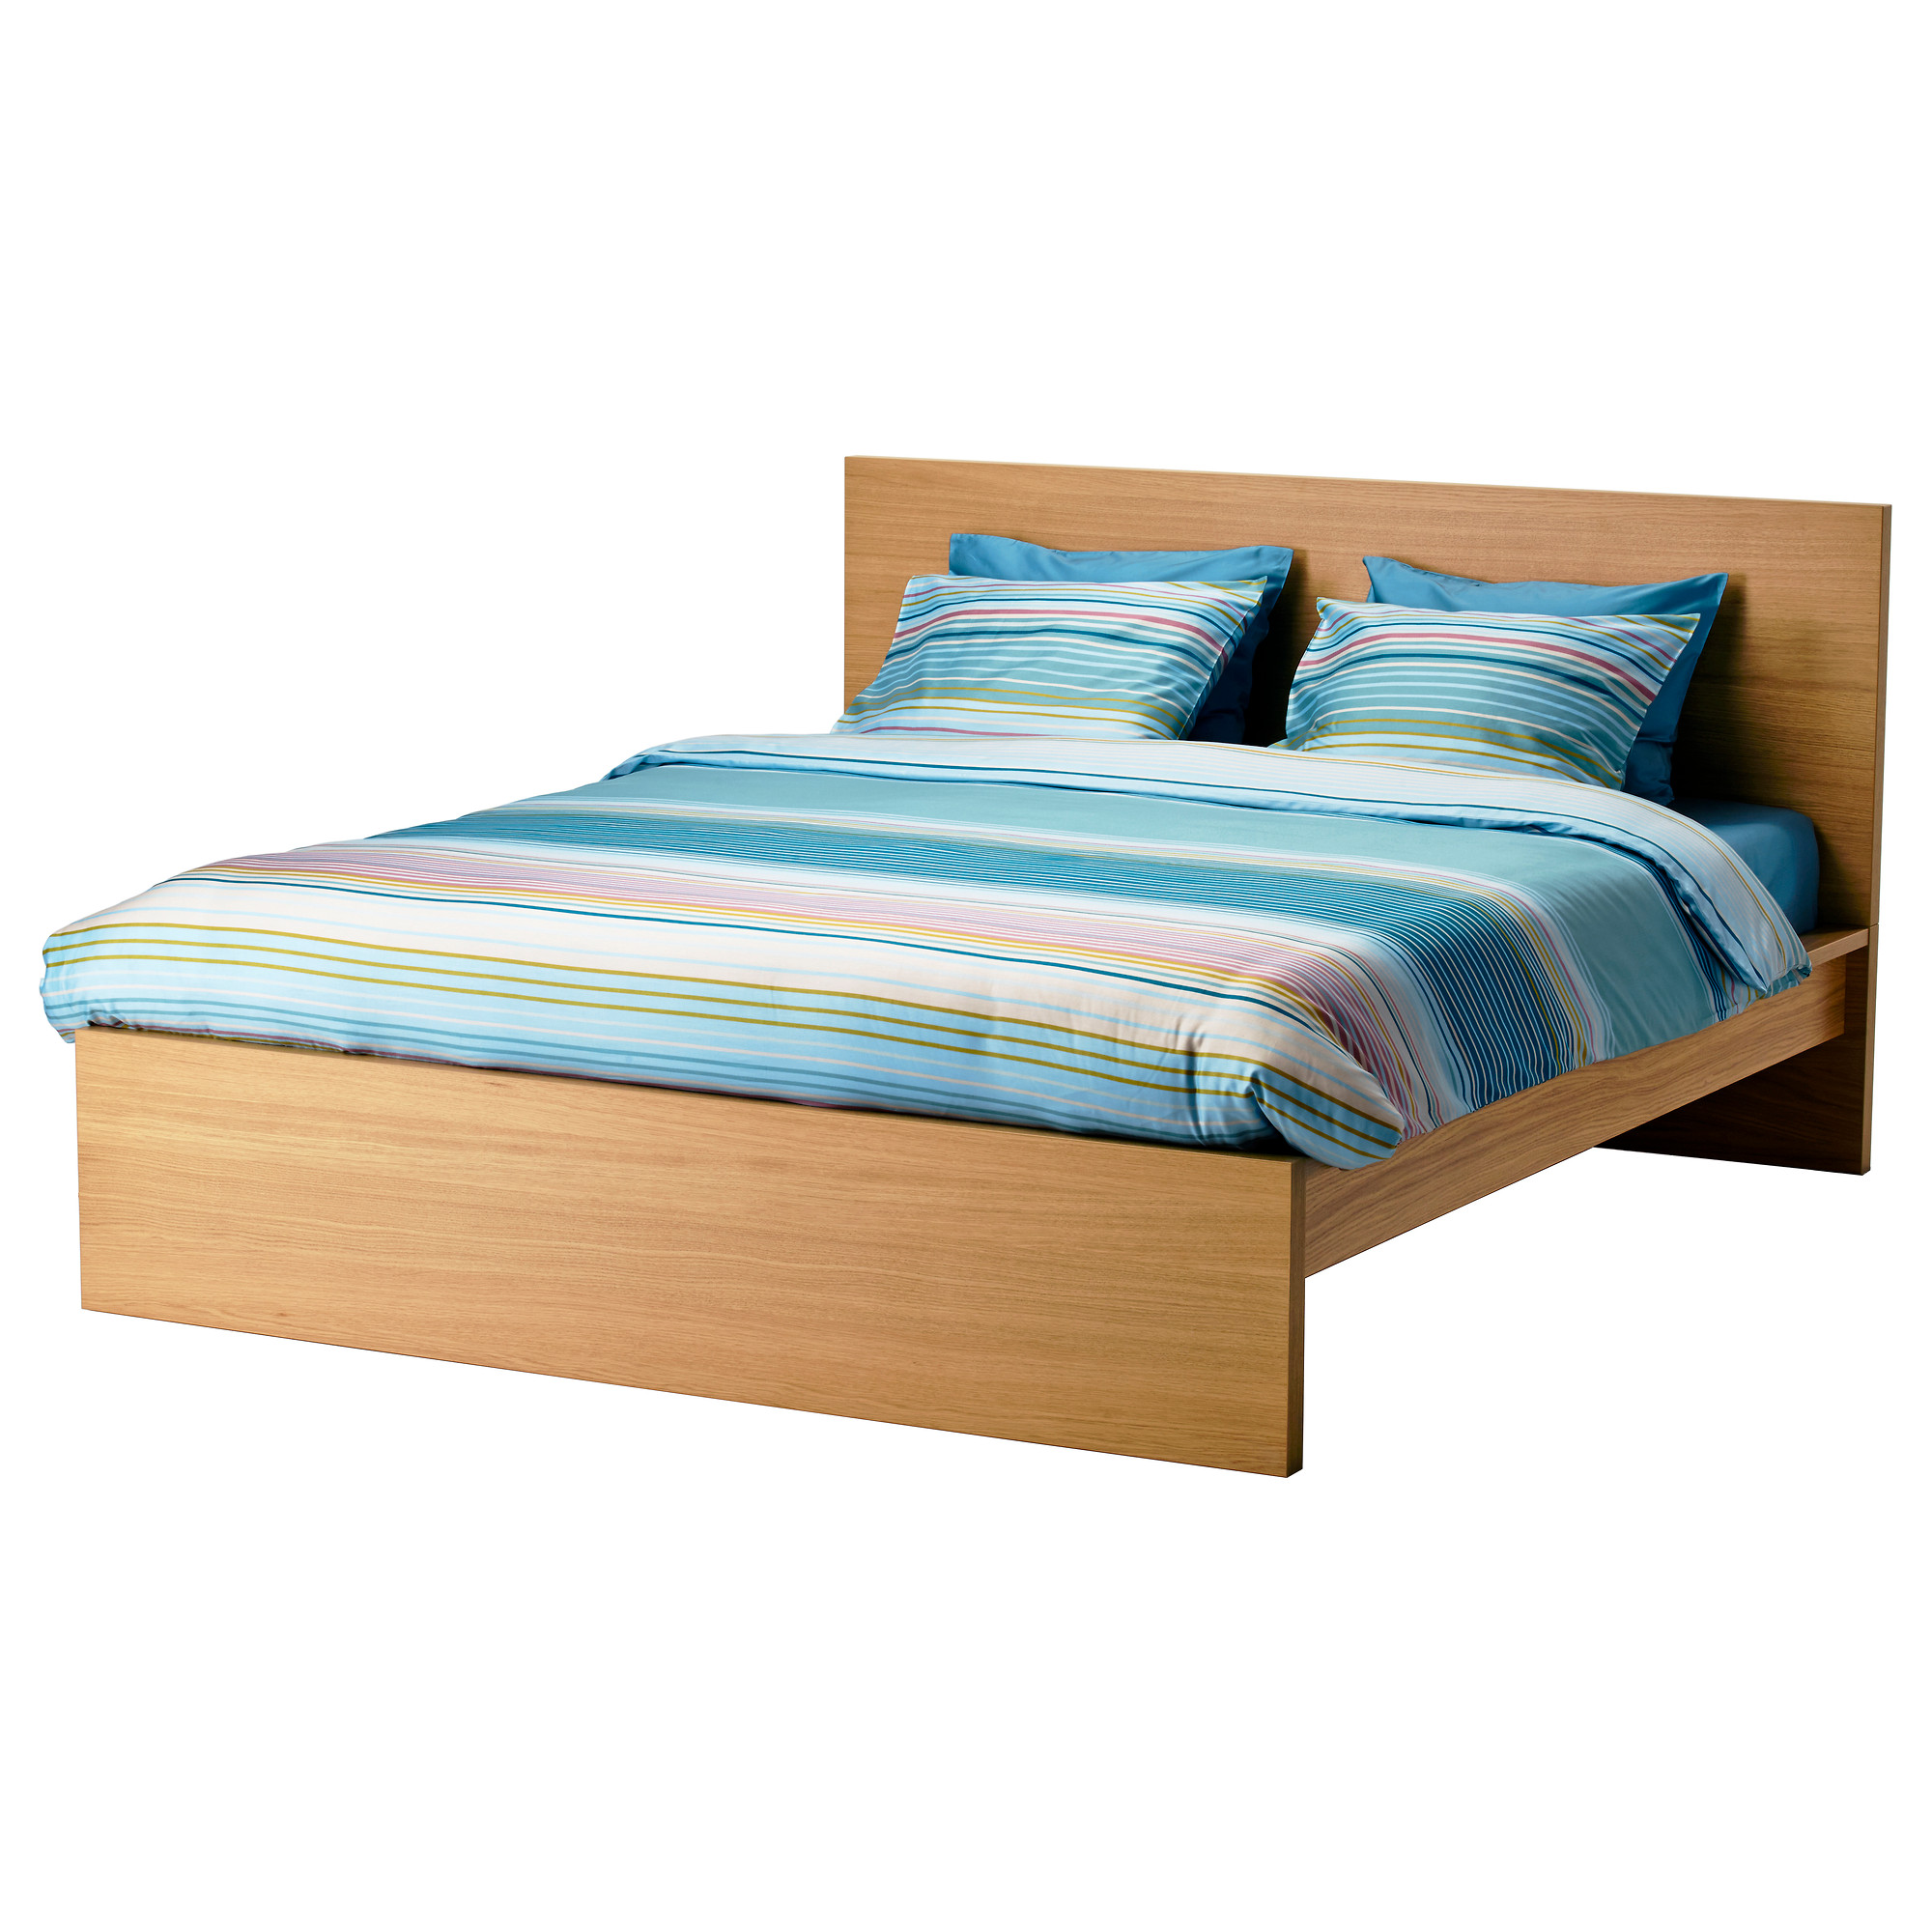 super king size bed frame ikea malm bed frame, high real wood veneer will make this bed age erijtgb